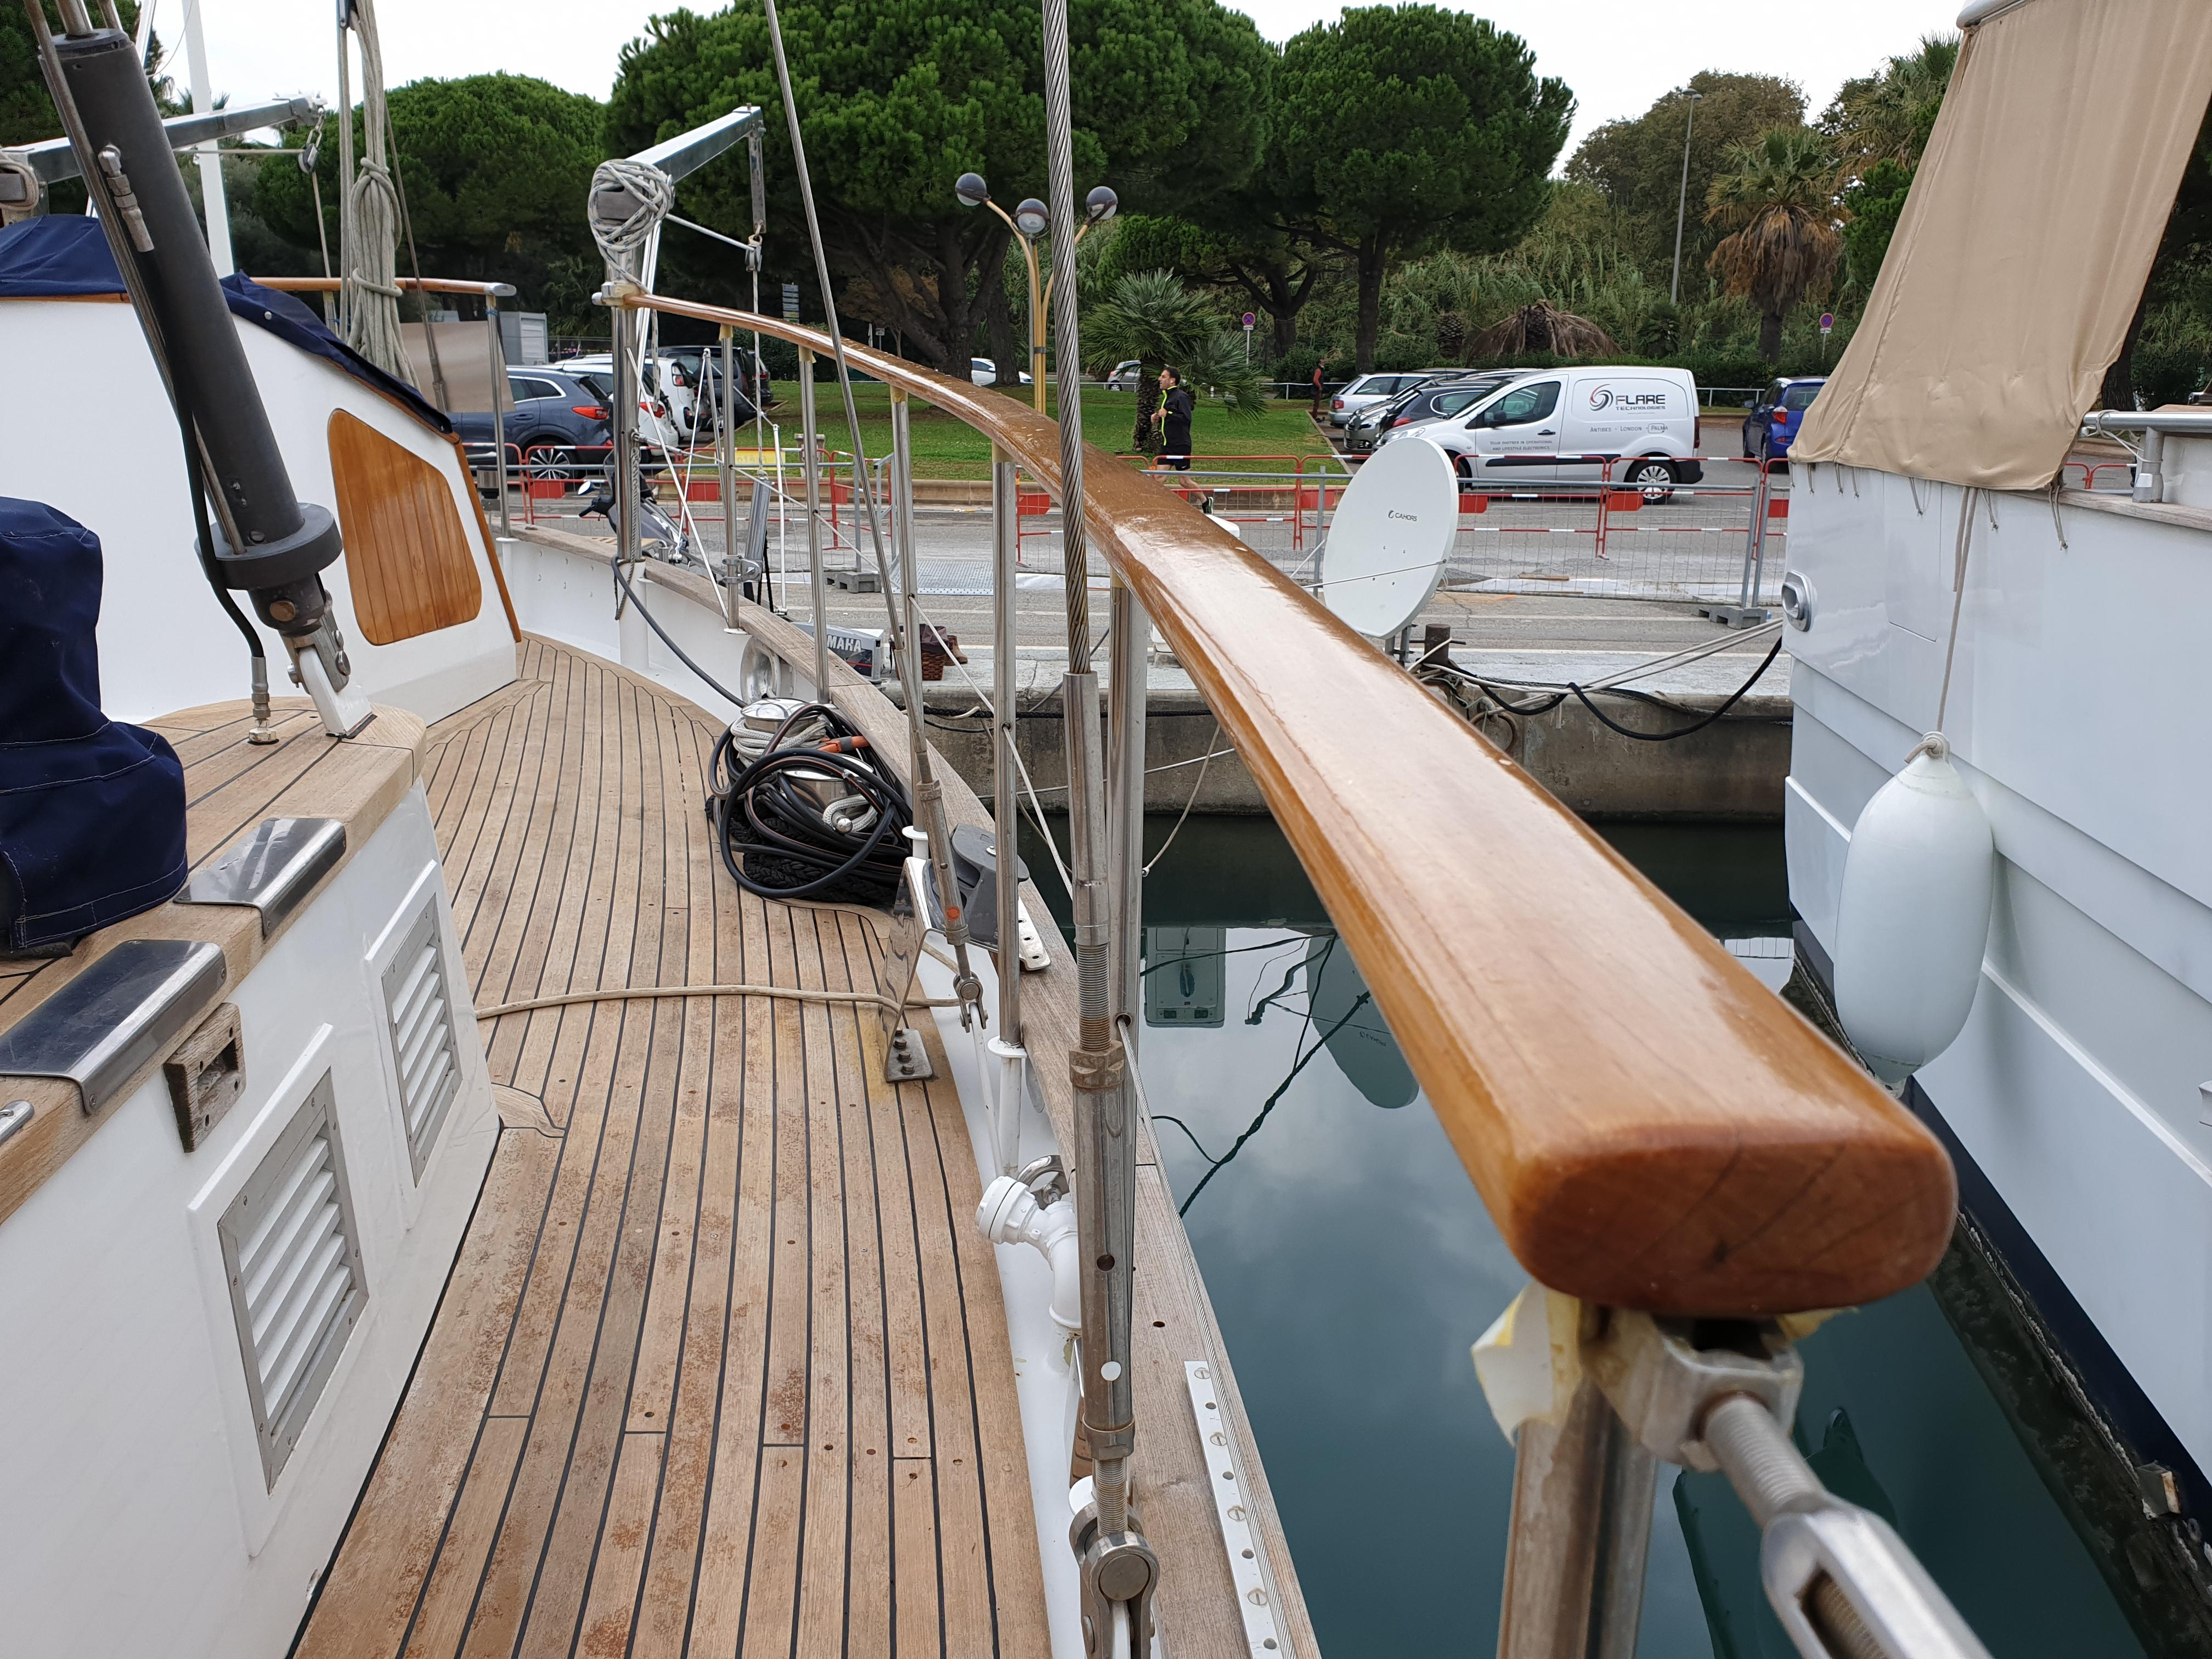 24m Arco Yachts Ketch  Network Yacht Brokers Antibes